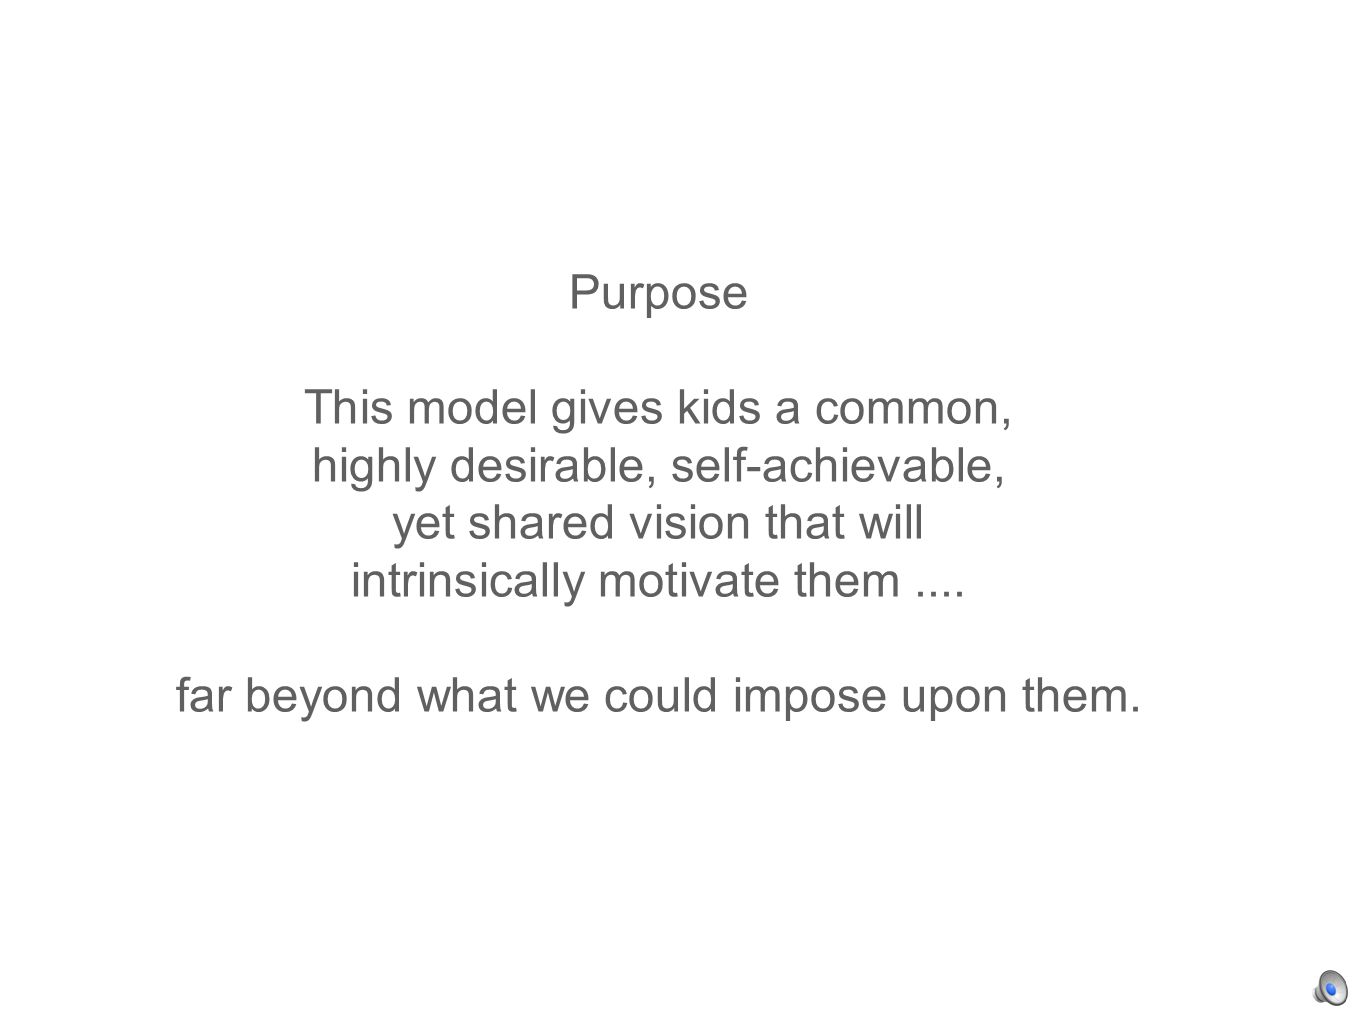 Purpose This model gives kids a common, highly desirable, self-achievable, yet shared vision that will intrinsically motivate them....